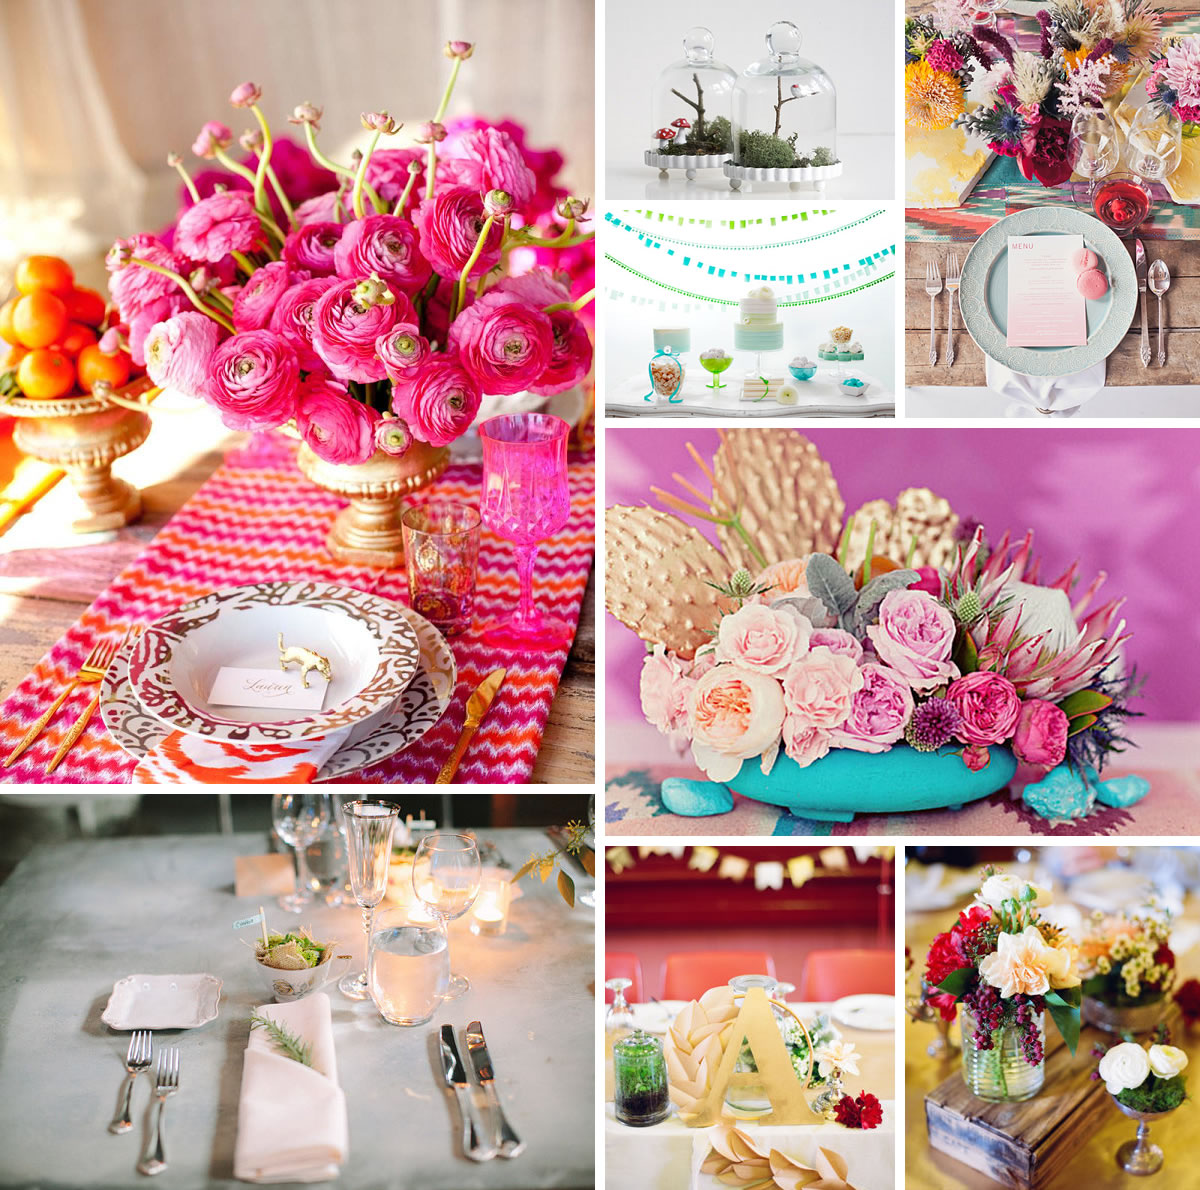 Wedding Tables Ideas: 20 Wedding Table Decor Ideas